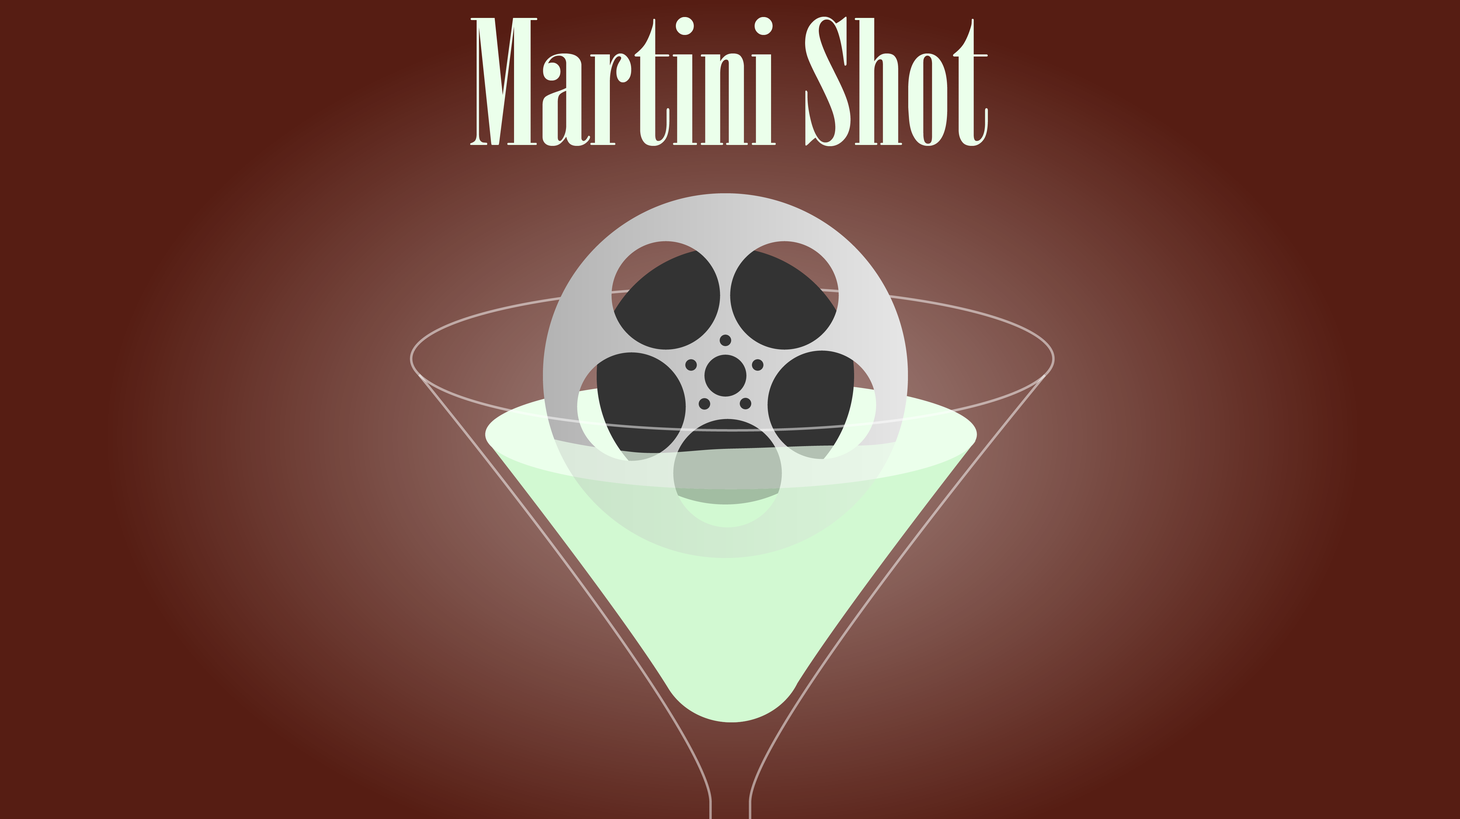 This is Rob Long and on today's Martini Shot I talk about that thing where when you go someplace foreign and you buy something you think you're going to wear back home, but, you're never going to wear it back home.